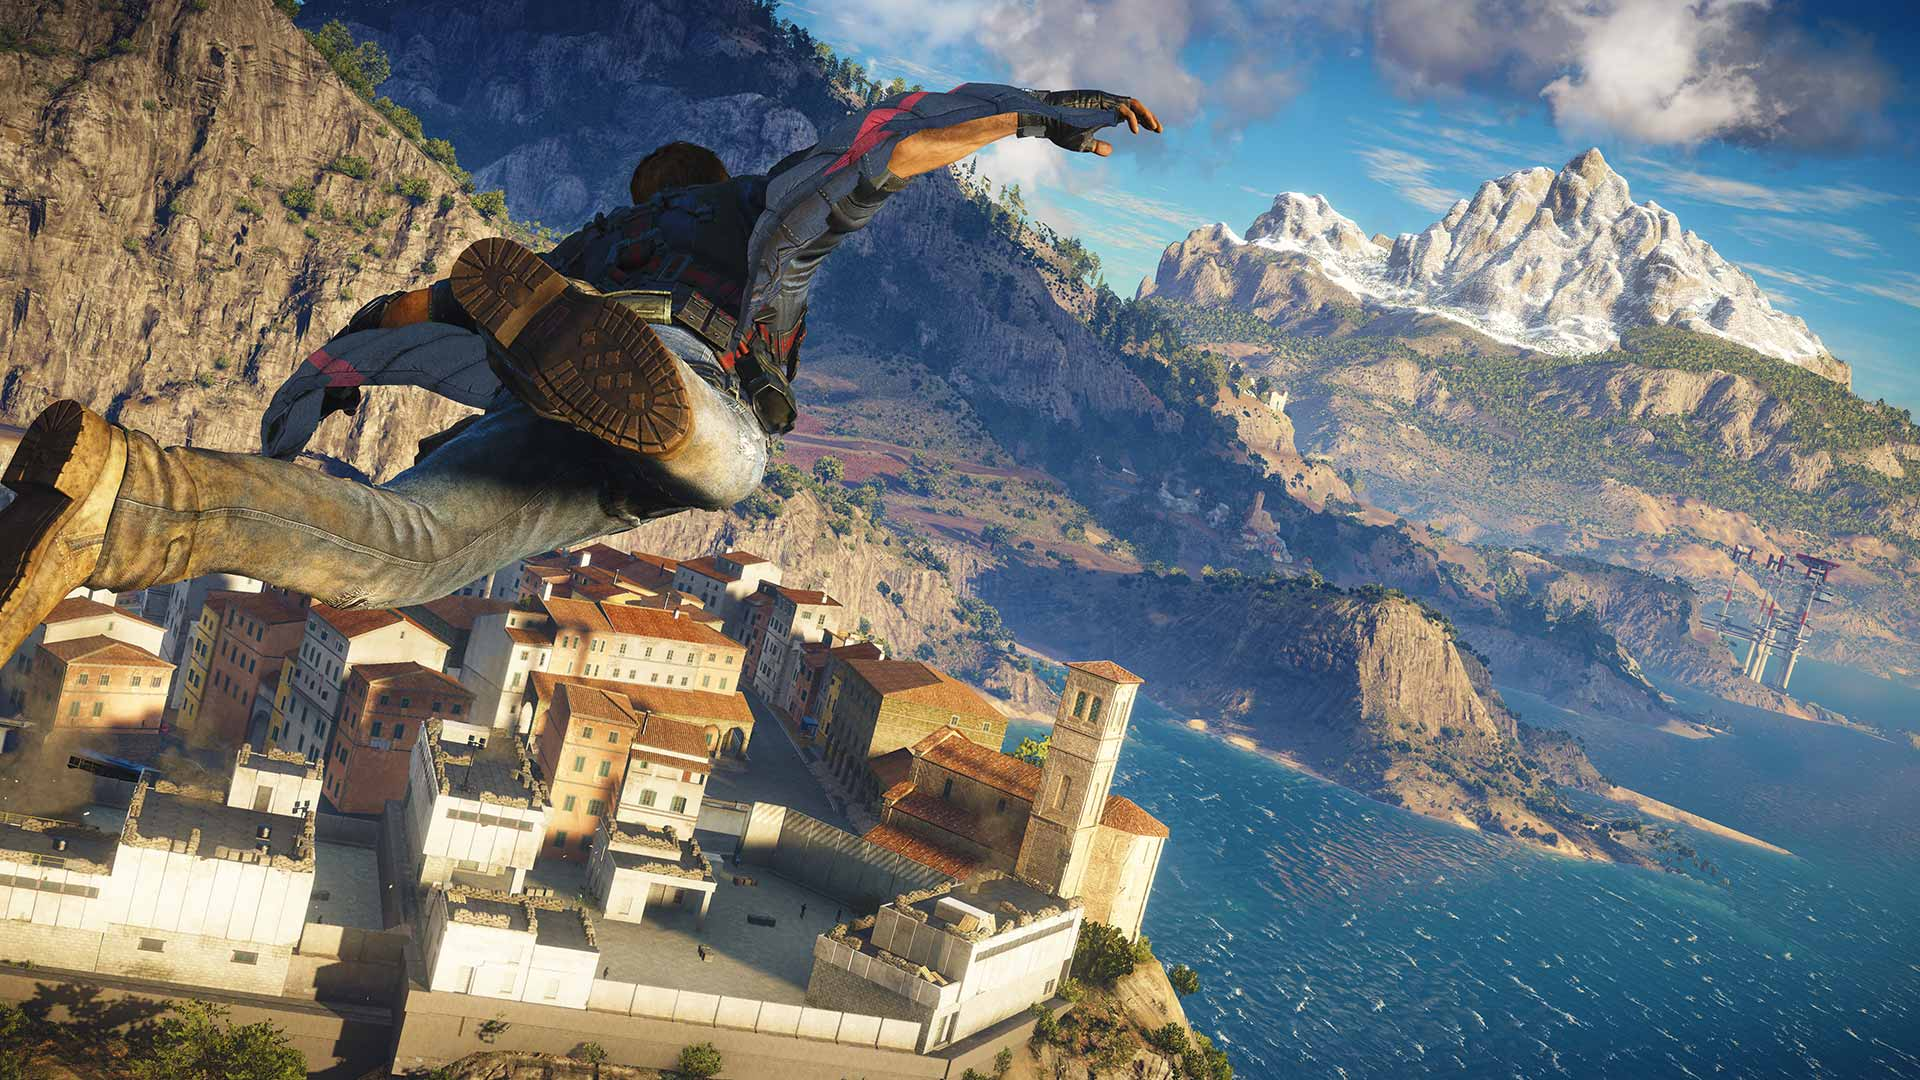 download just cause 3 xl edition include all dlc and update global cd key free 2017 gratis for pc playstation 4 ps4 ps3 xbox one 360 iso complex mp add-on multiplayer addon free copiapop diskokosmiko